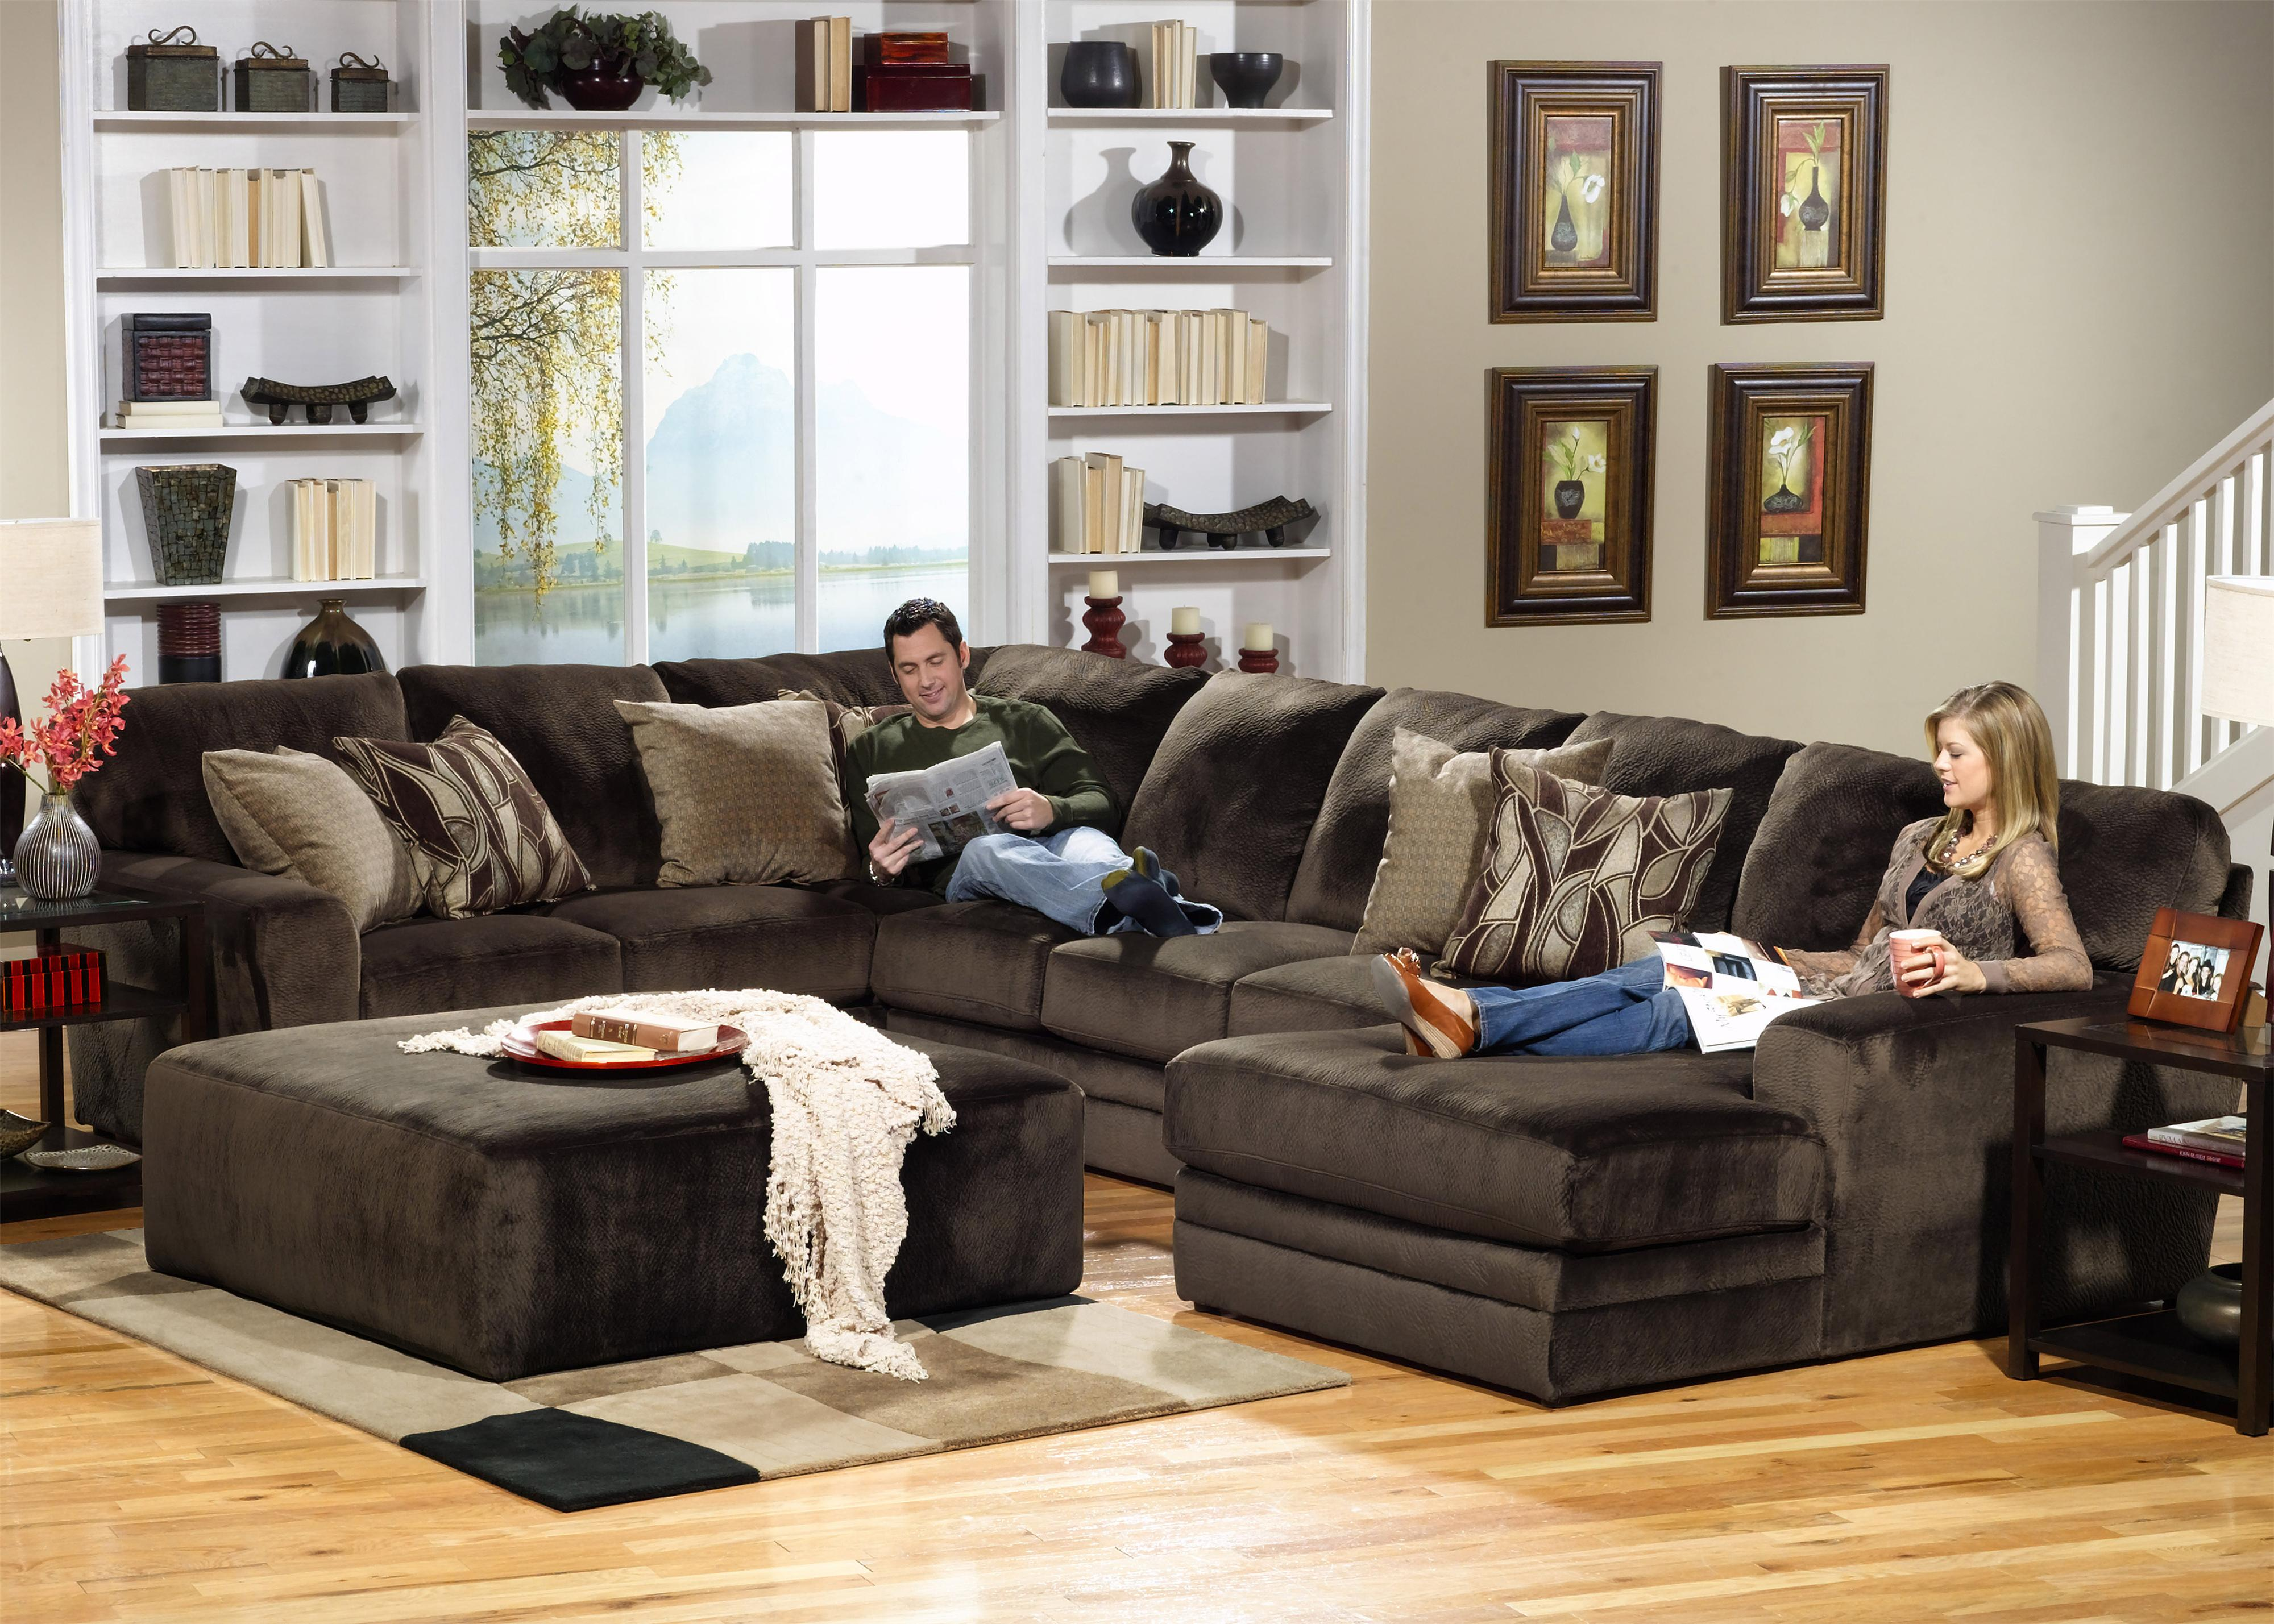 3 Piece Sectional with LSF Section by Jackson Furniture